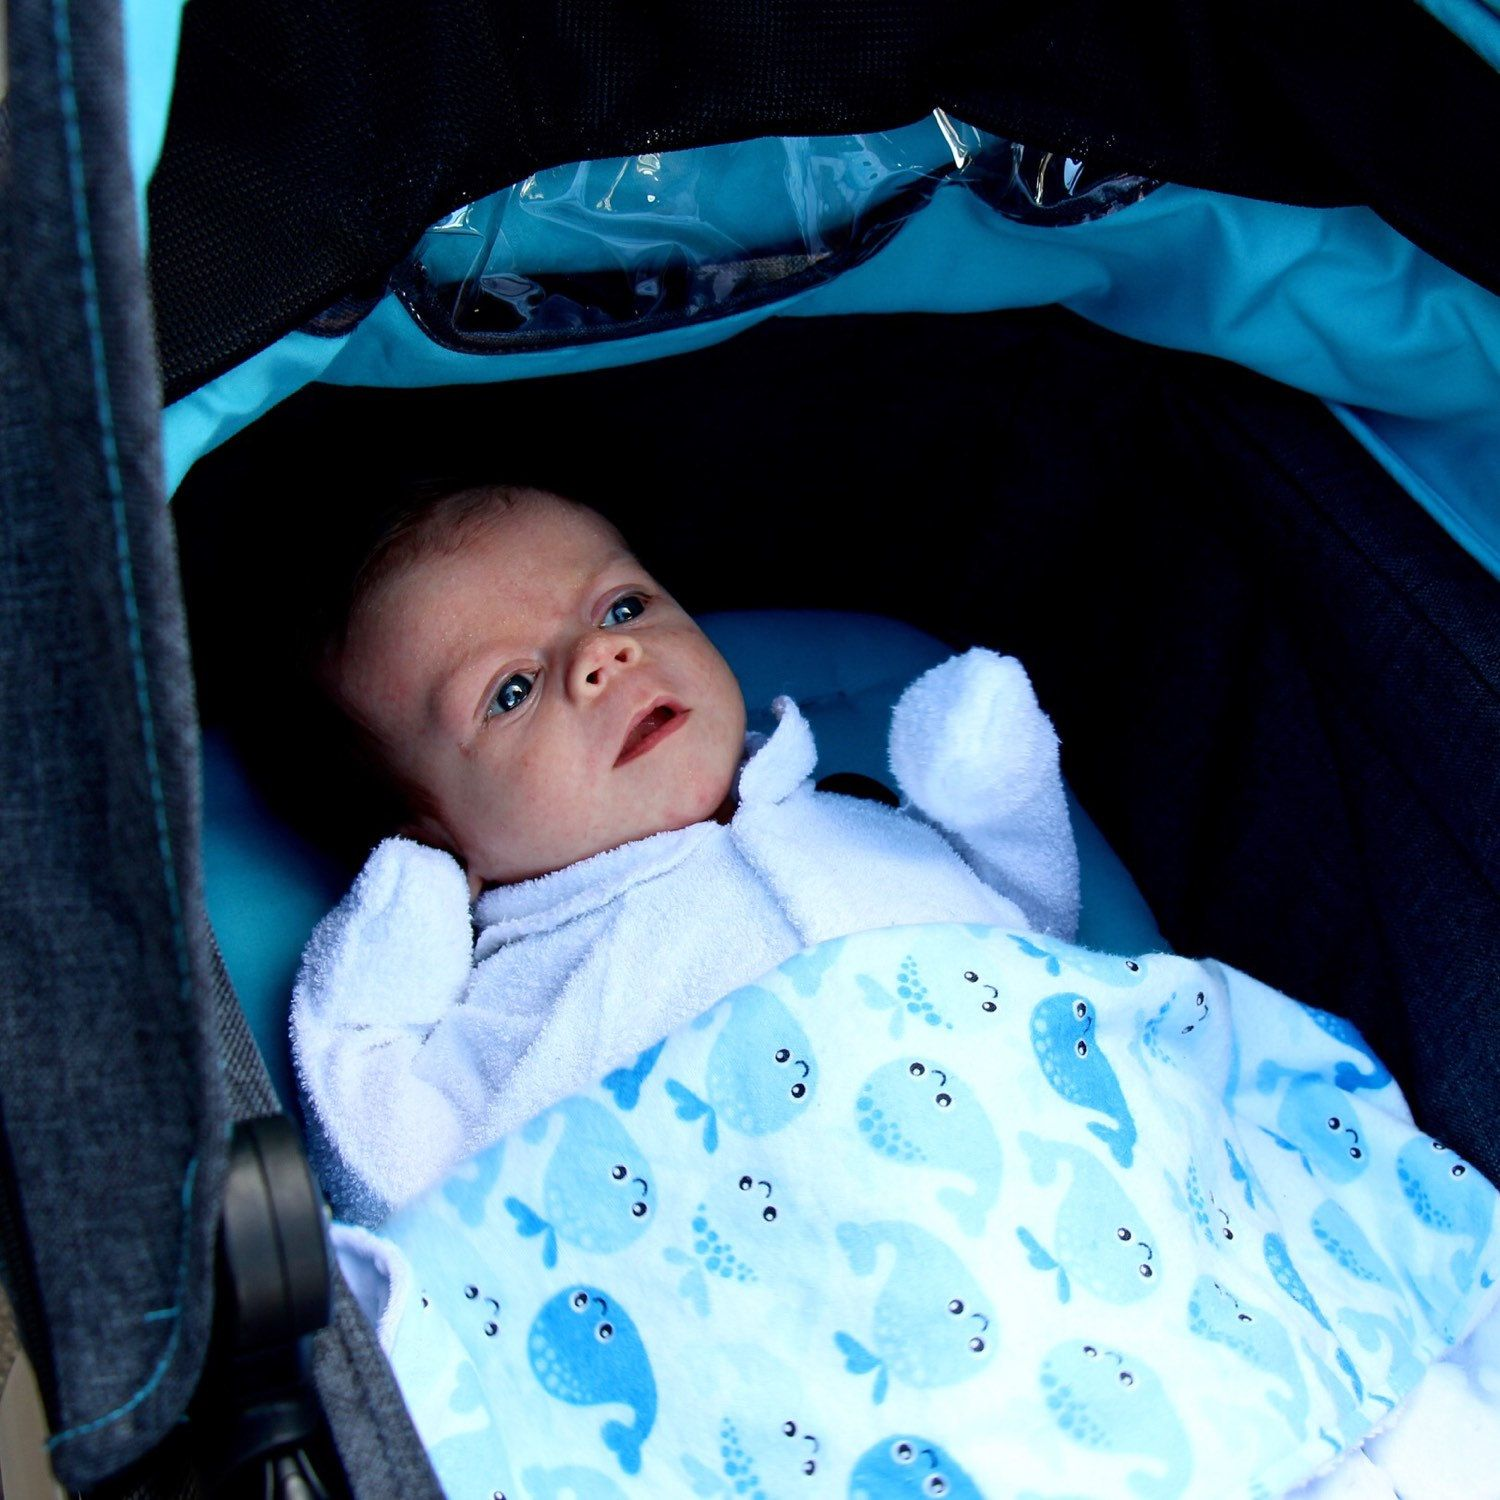 Baby Lucas wrapped up in the Jonah Newborn Baby Blanket